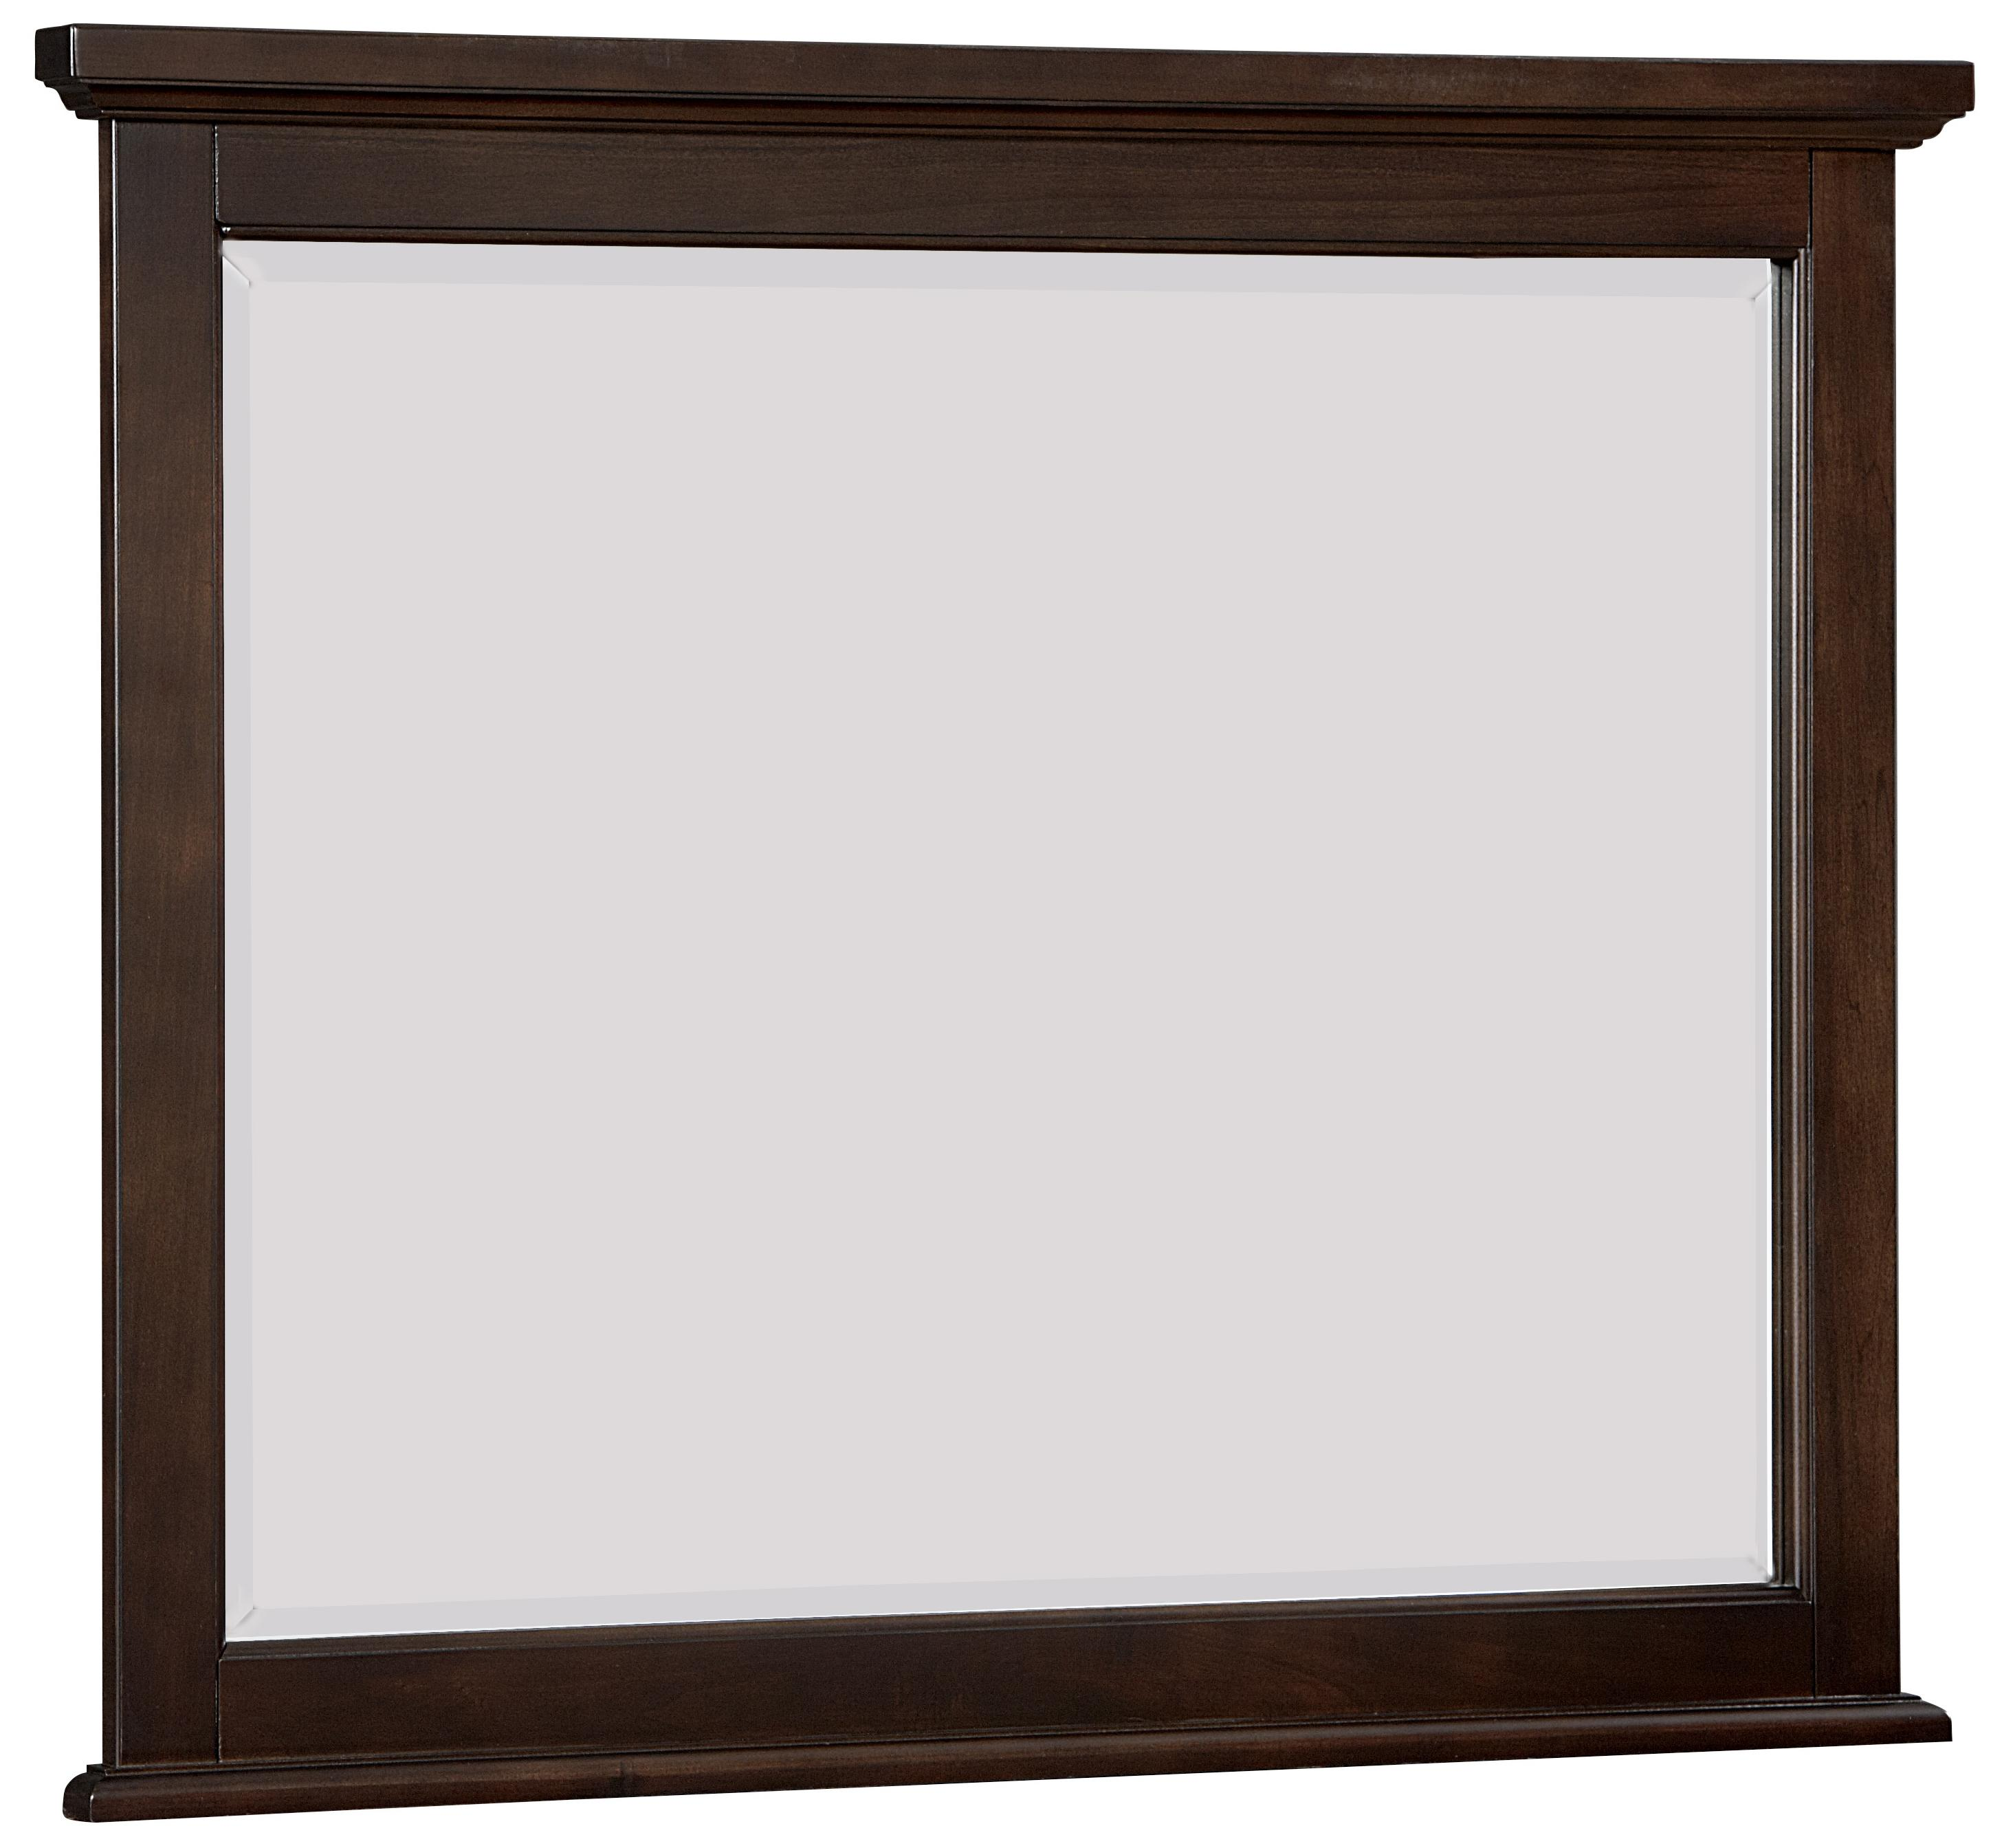 Vaughan Bassett Bonanza Landscape Mirror - Bevel Glass - Item Number: BB27-446